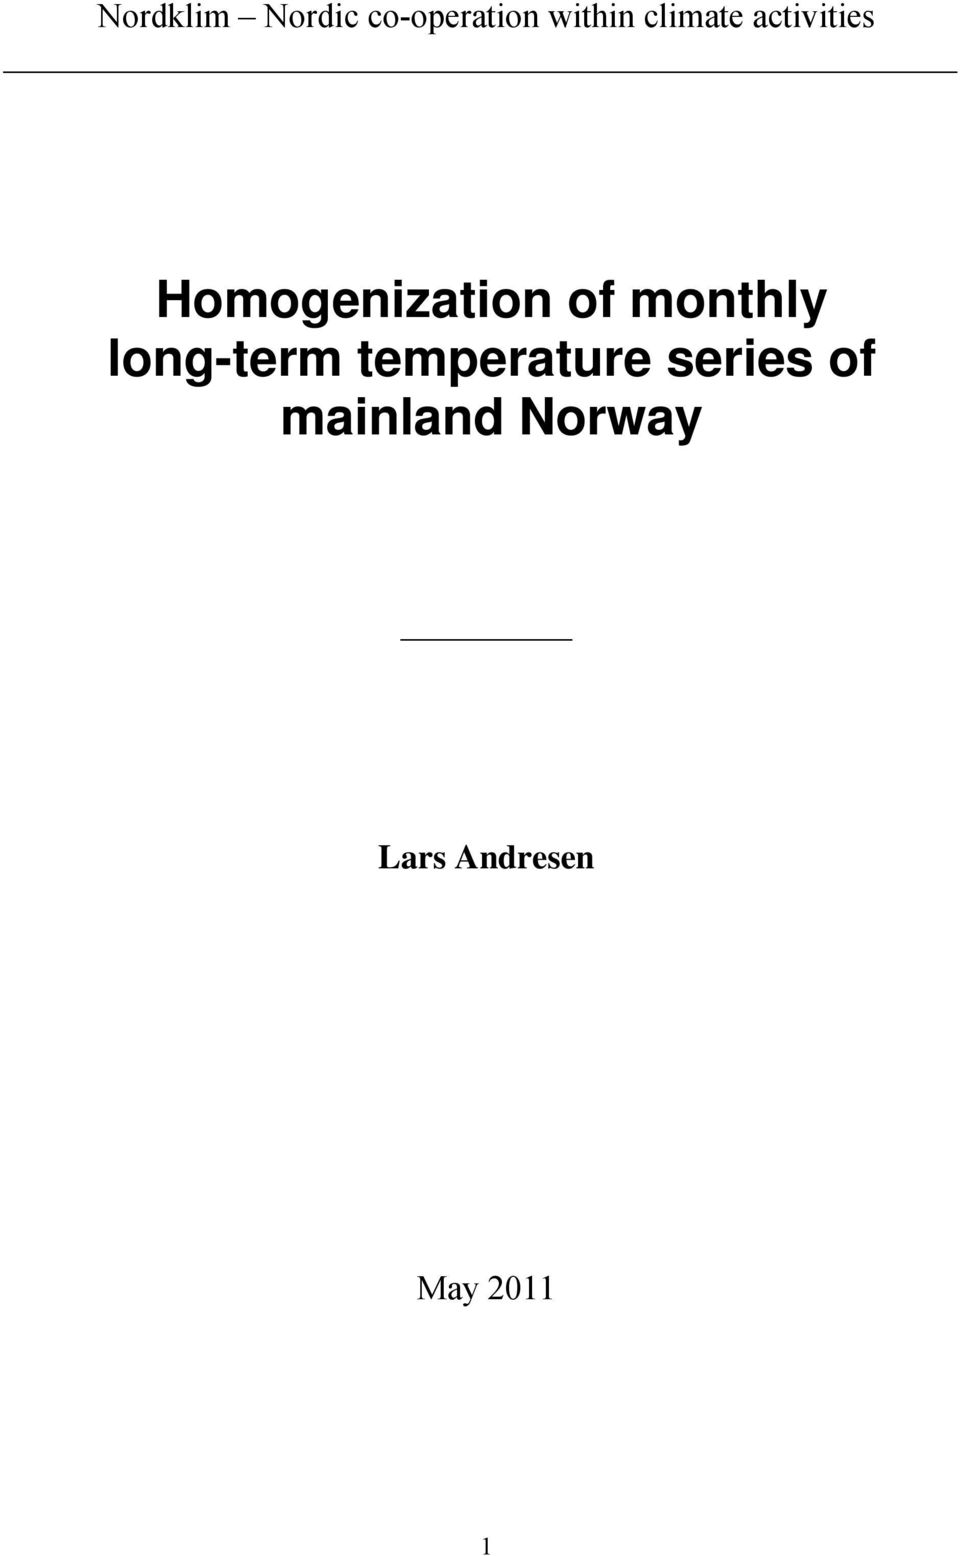 monthly long-term temperature series